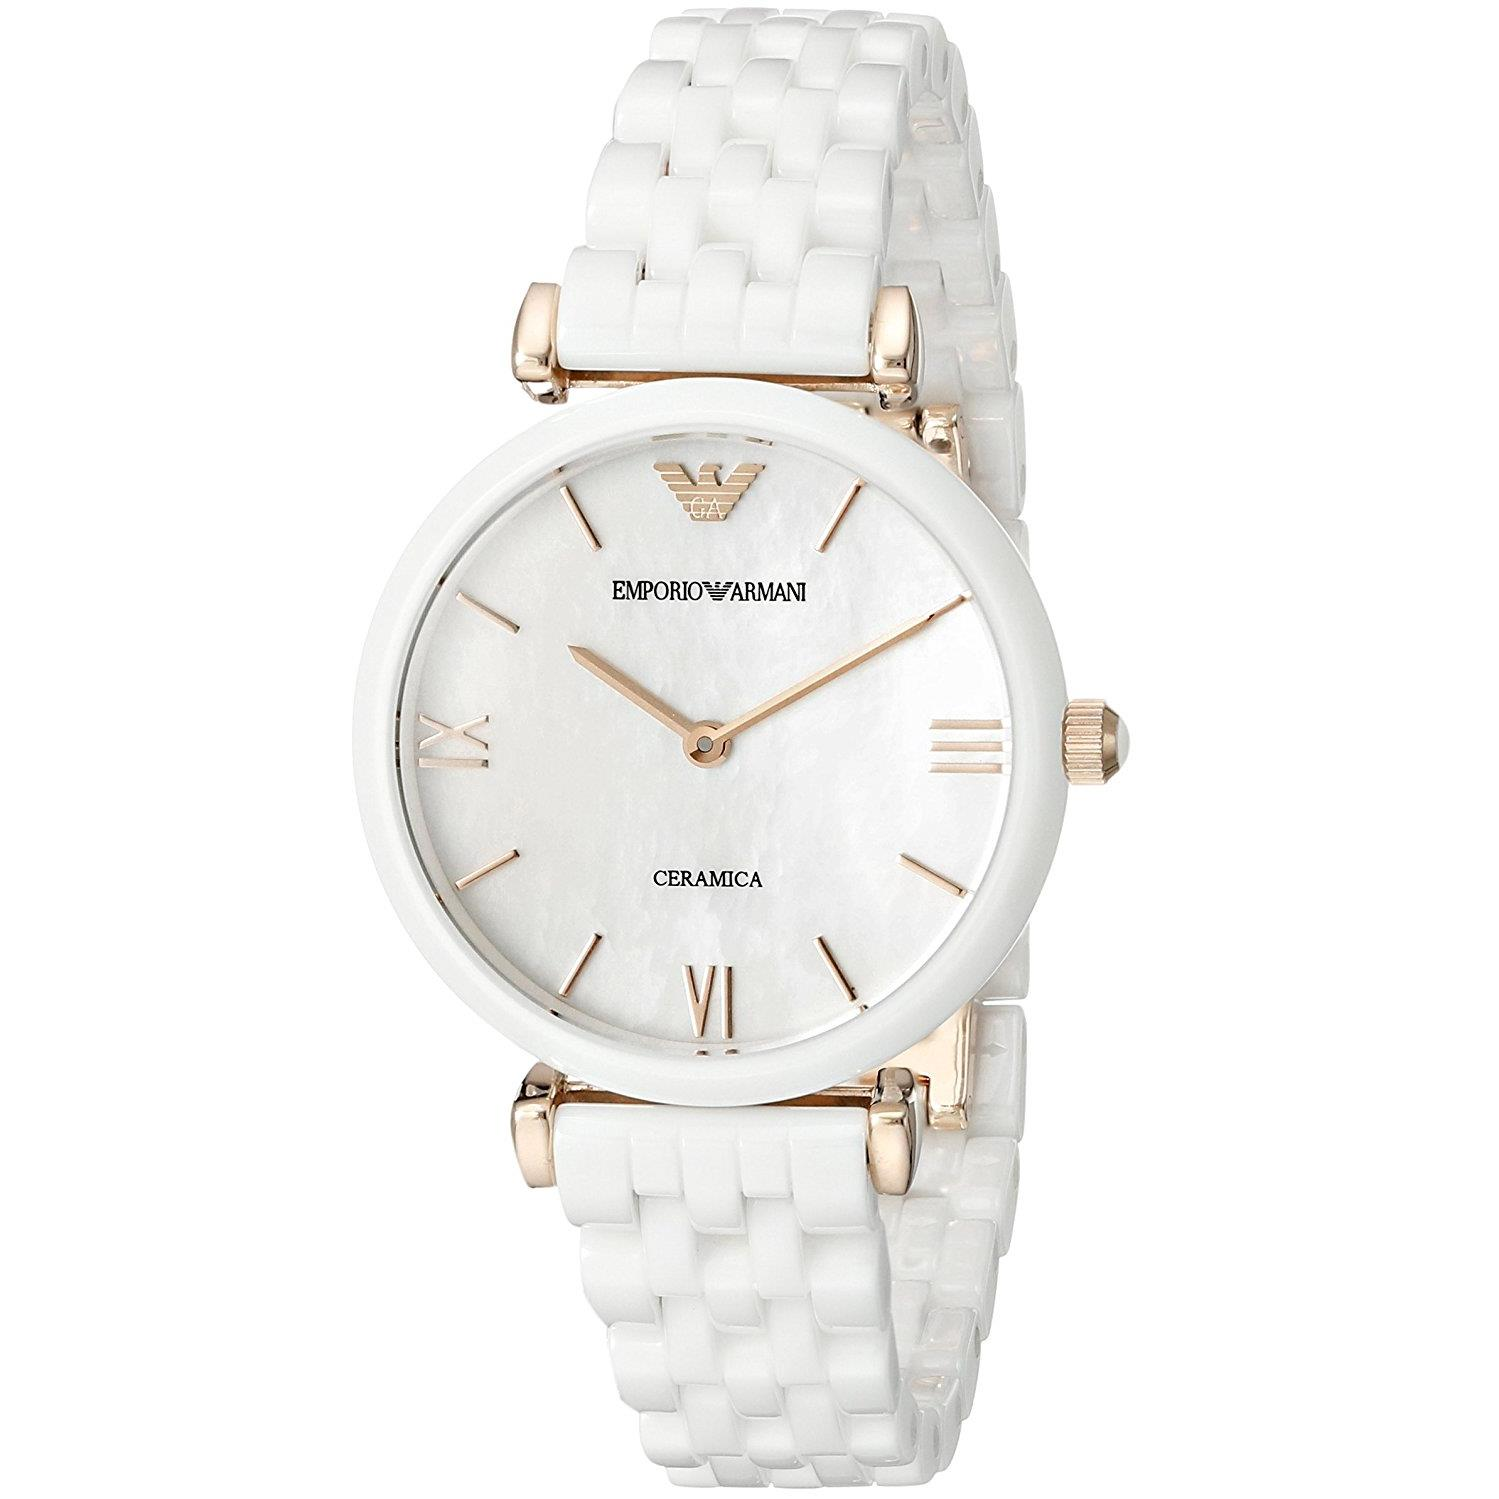 Emporio Armani Women's 32mm White Ceramic Band & Case Qua...